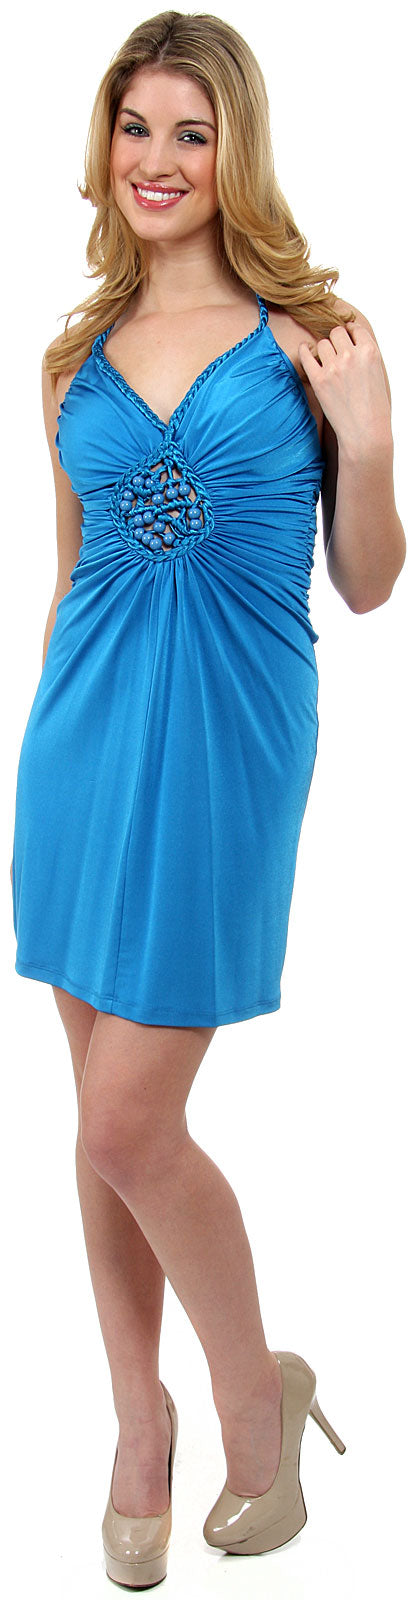 Main image of Halter Neck Party Dress With Front Keyhole